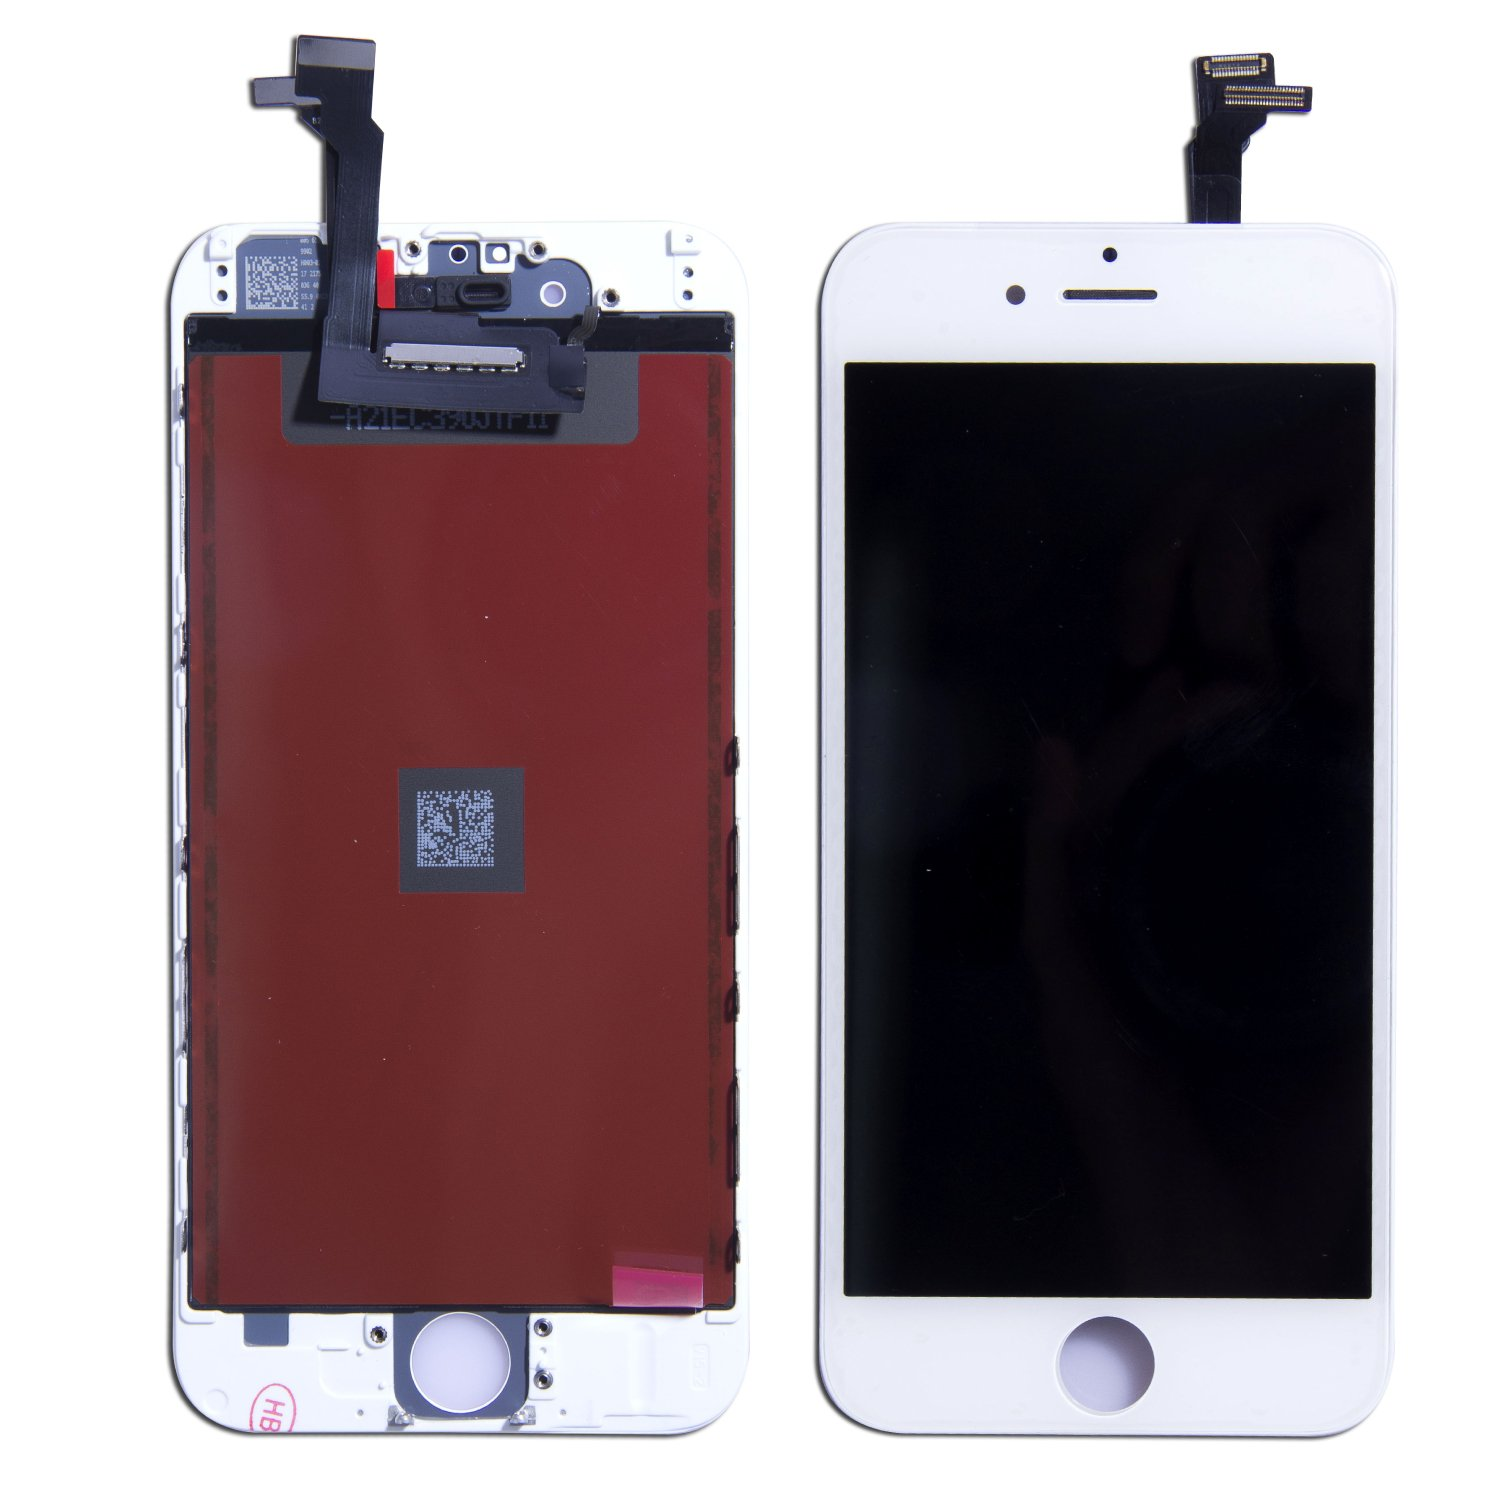 IPhone 6 Replacement Screen White